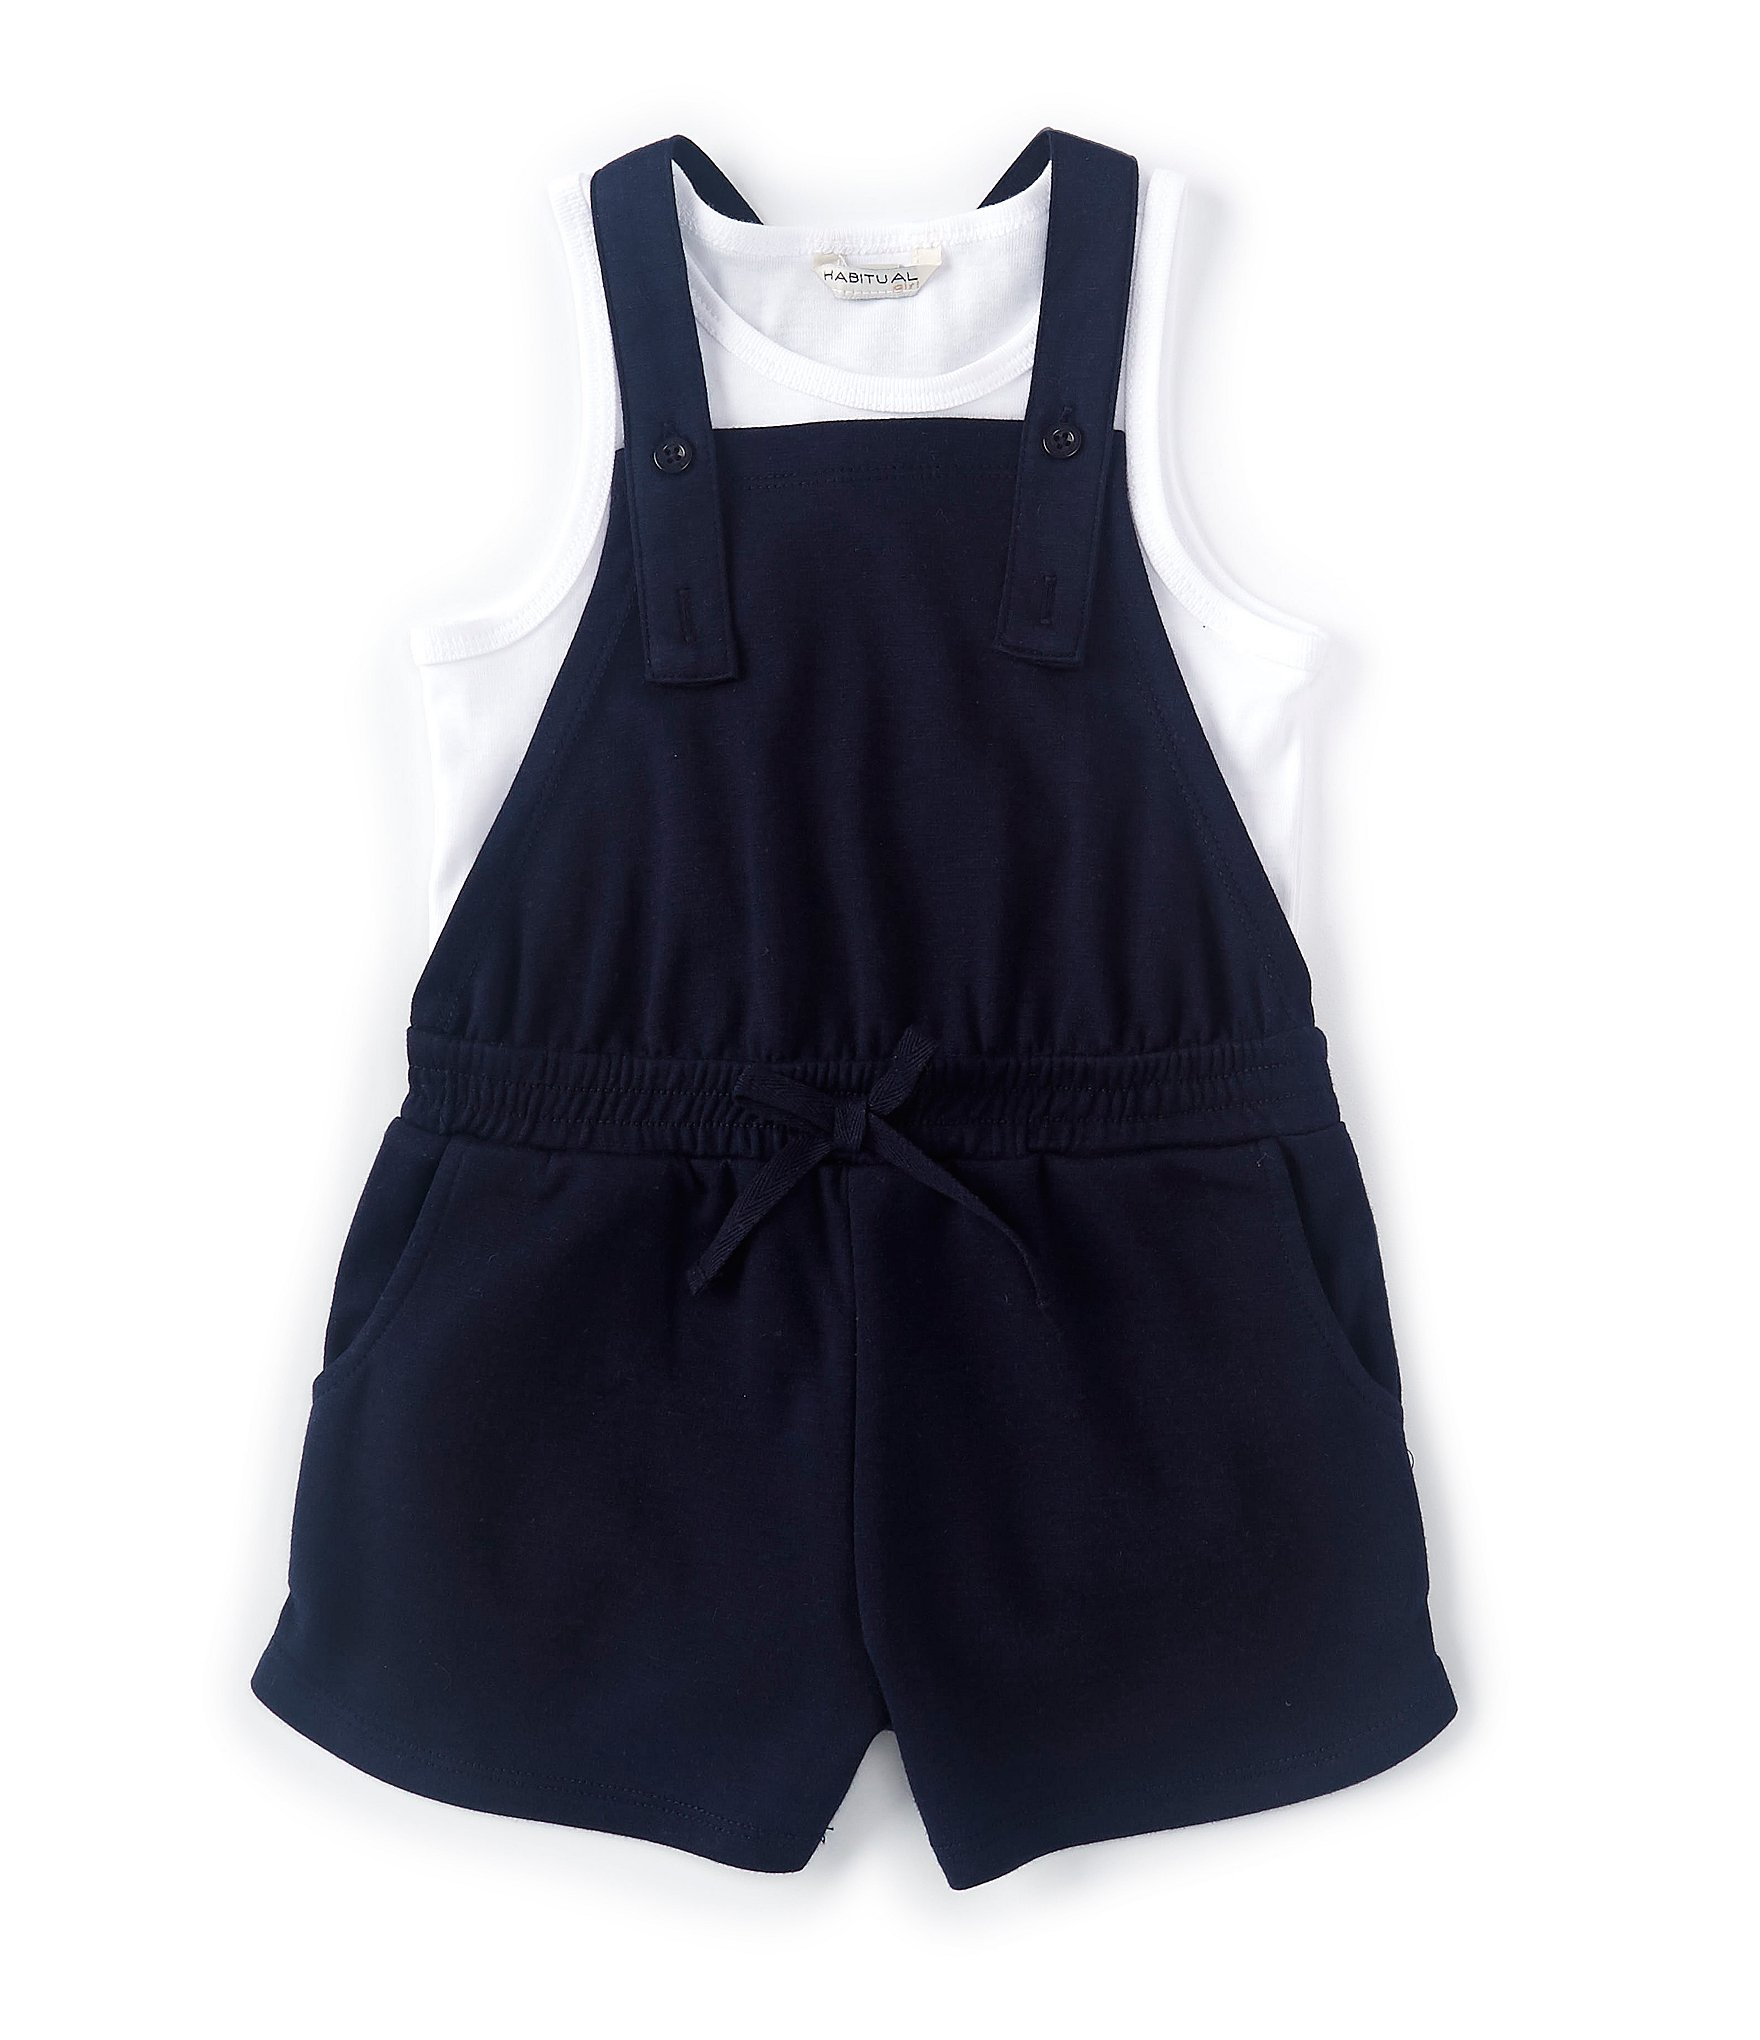 LIKESIDE Toddler Baby Girl Sleeveless Solid Tops Outerwear Waistcoat Outfit Vest